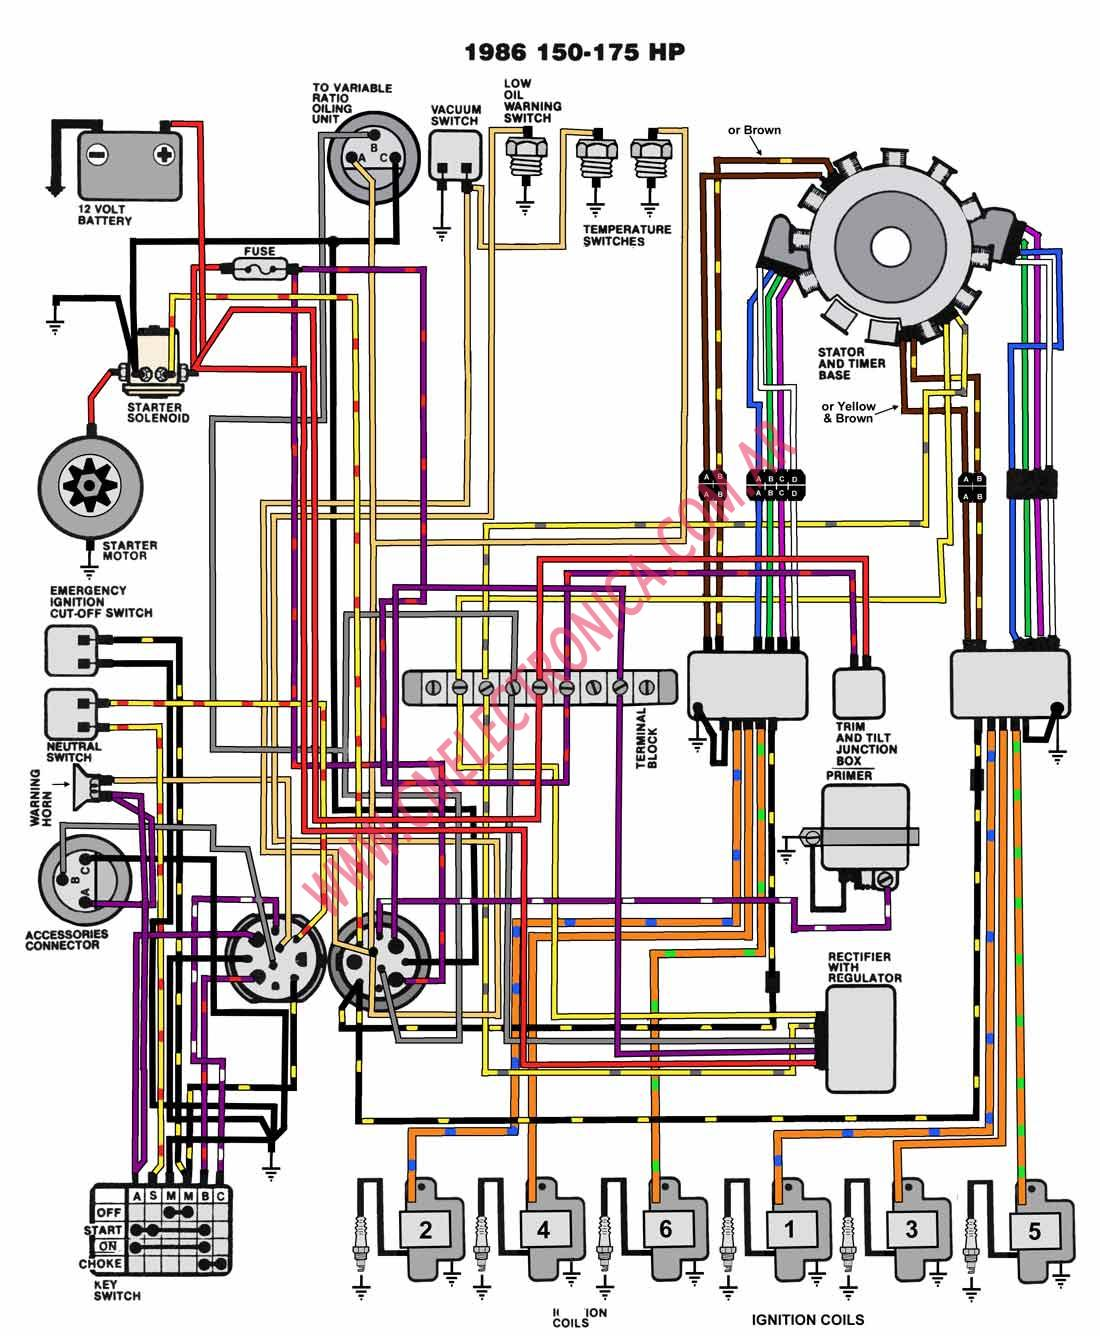 evinrude_johnson 1986_150_175?quality\\\\\\\=80\\\\\\\&strip\\\\\\\=all johnson outboard wiring diagram & mastertech marine evinrude mercury outboard wiring diagram schematic at mifinder.co